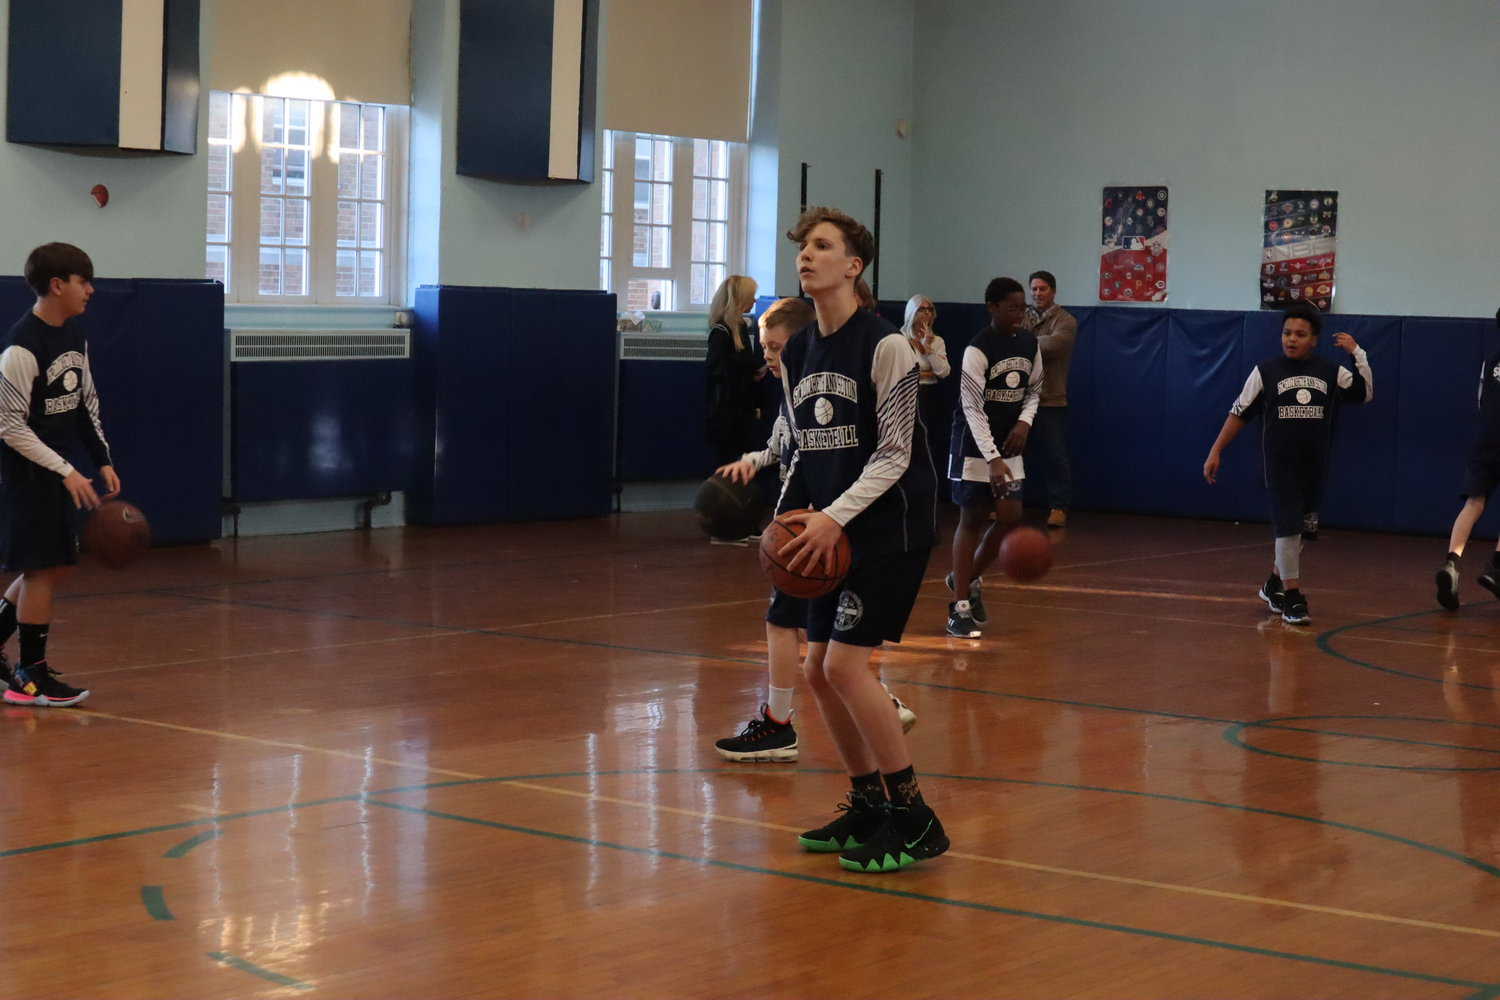 Anthony Follett practiced free throws and drills with the St. Elizabeth Ann Seton team on Monday. A newcomer to the team this season, he blended with the team well, Coach Glenn O'Kane said.